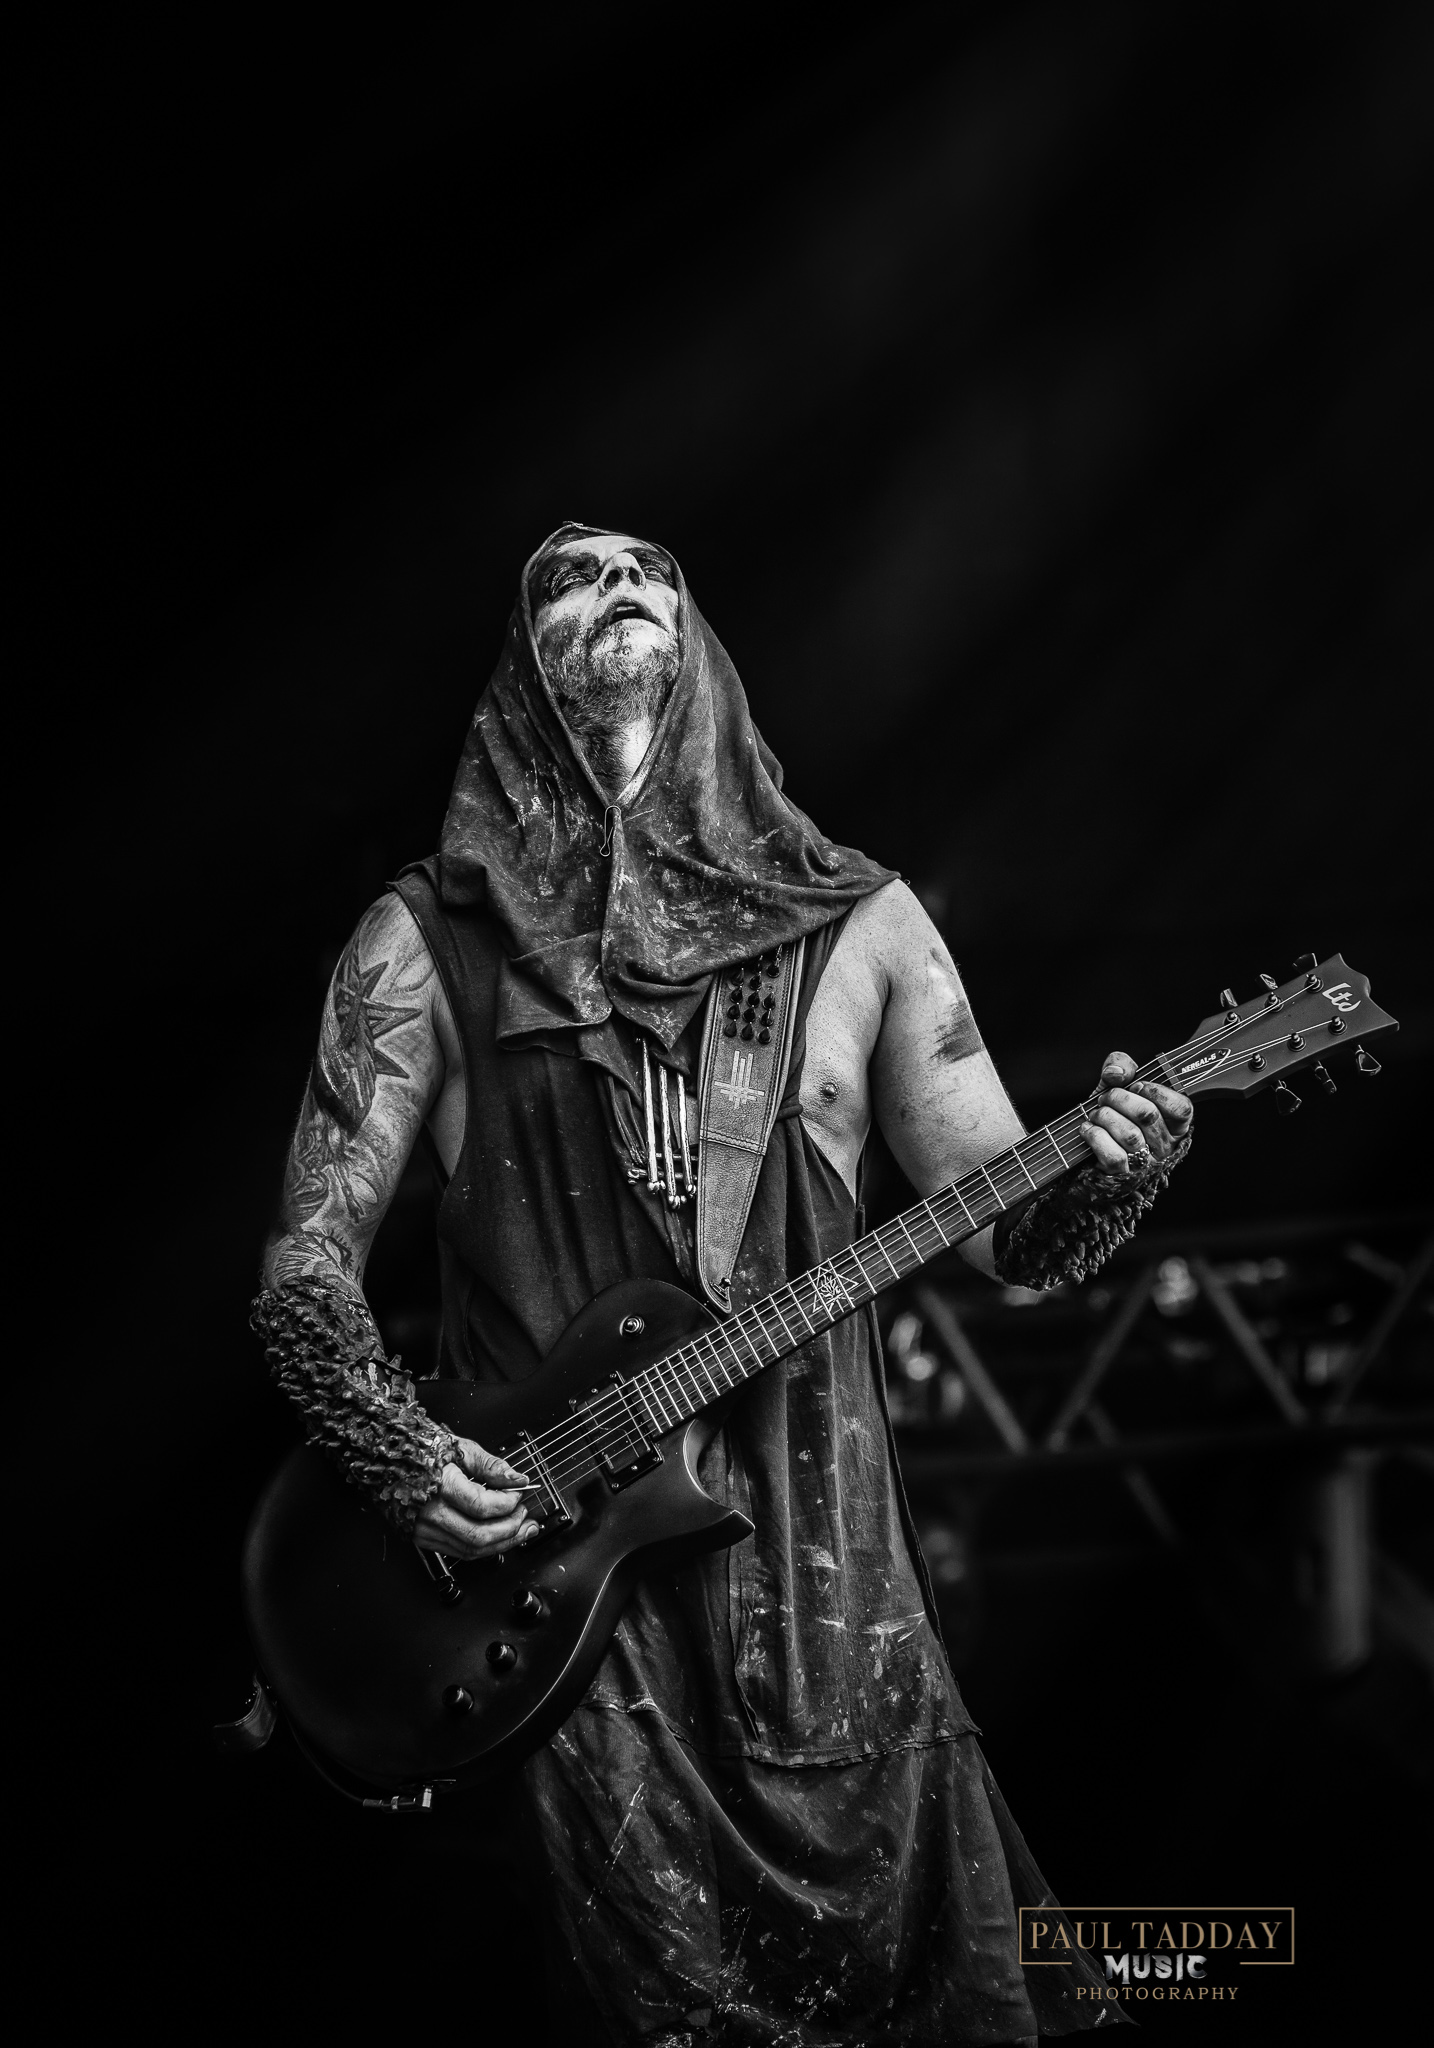 behemoth - download melbourne - march 2019 - web - paul tadday photography - 14.jpg